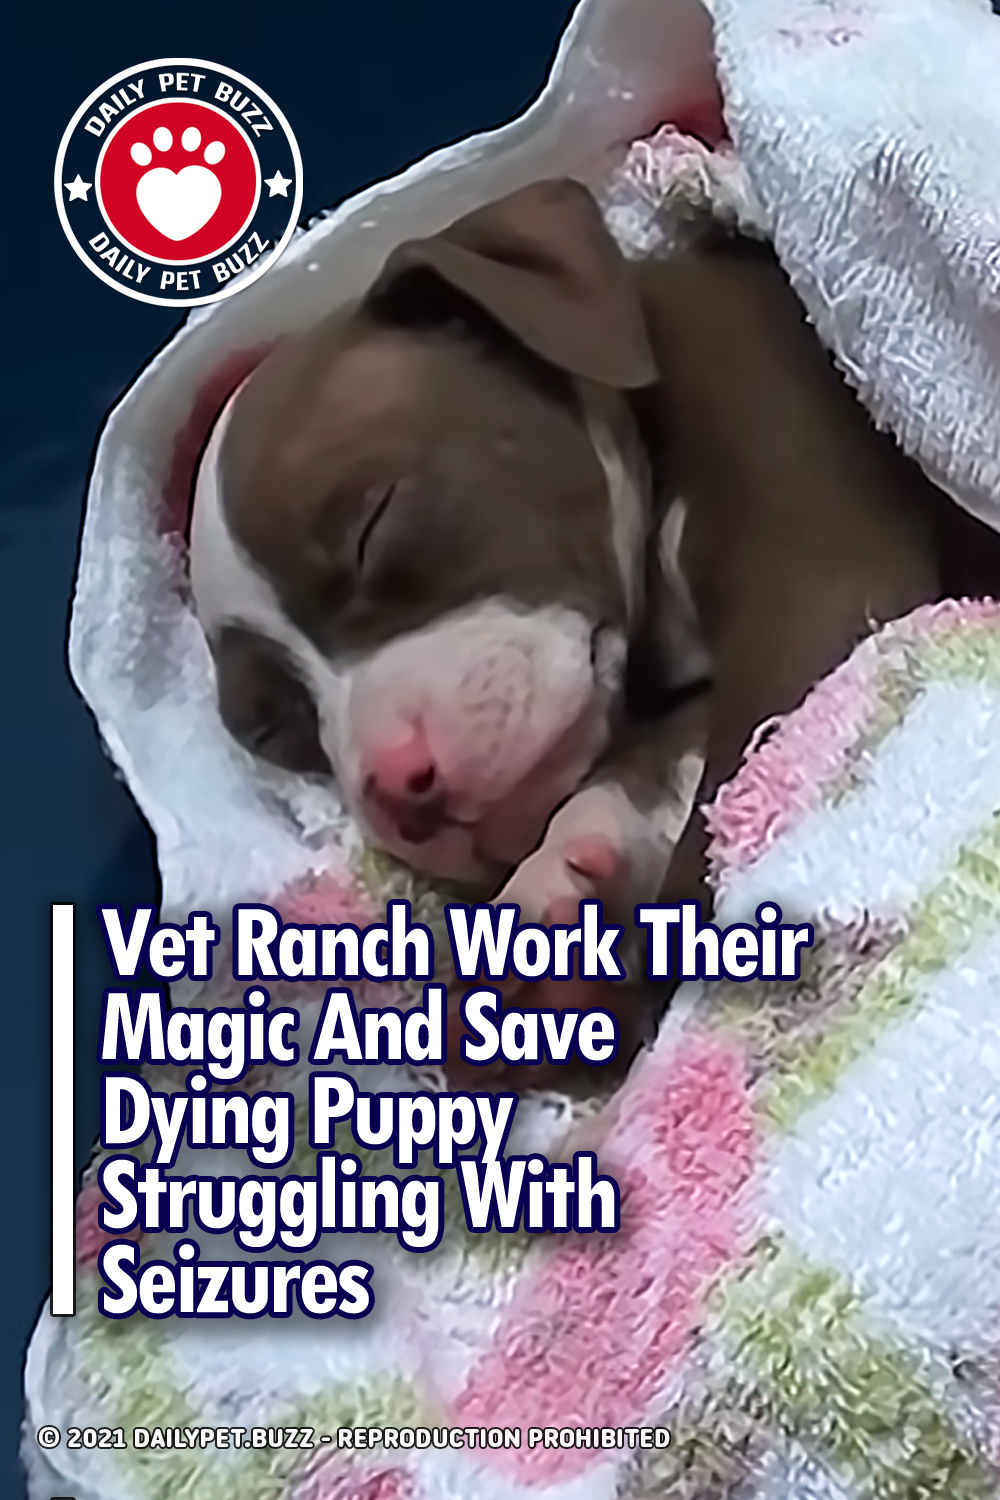 Vet Ranch Work Their Magic And Save Dying Puppy Struggling With Seizures